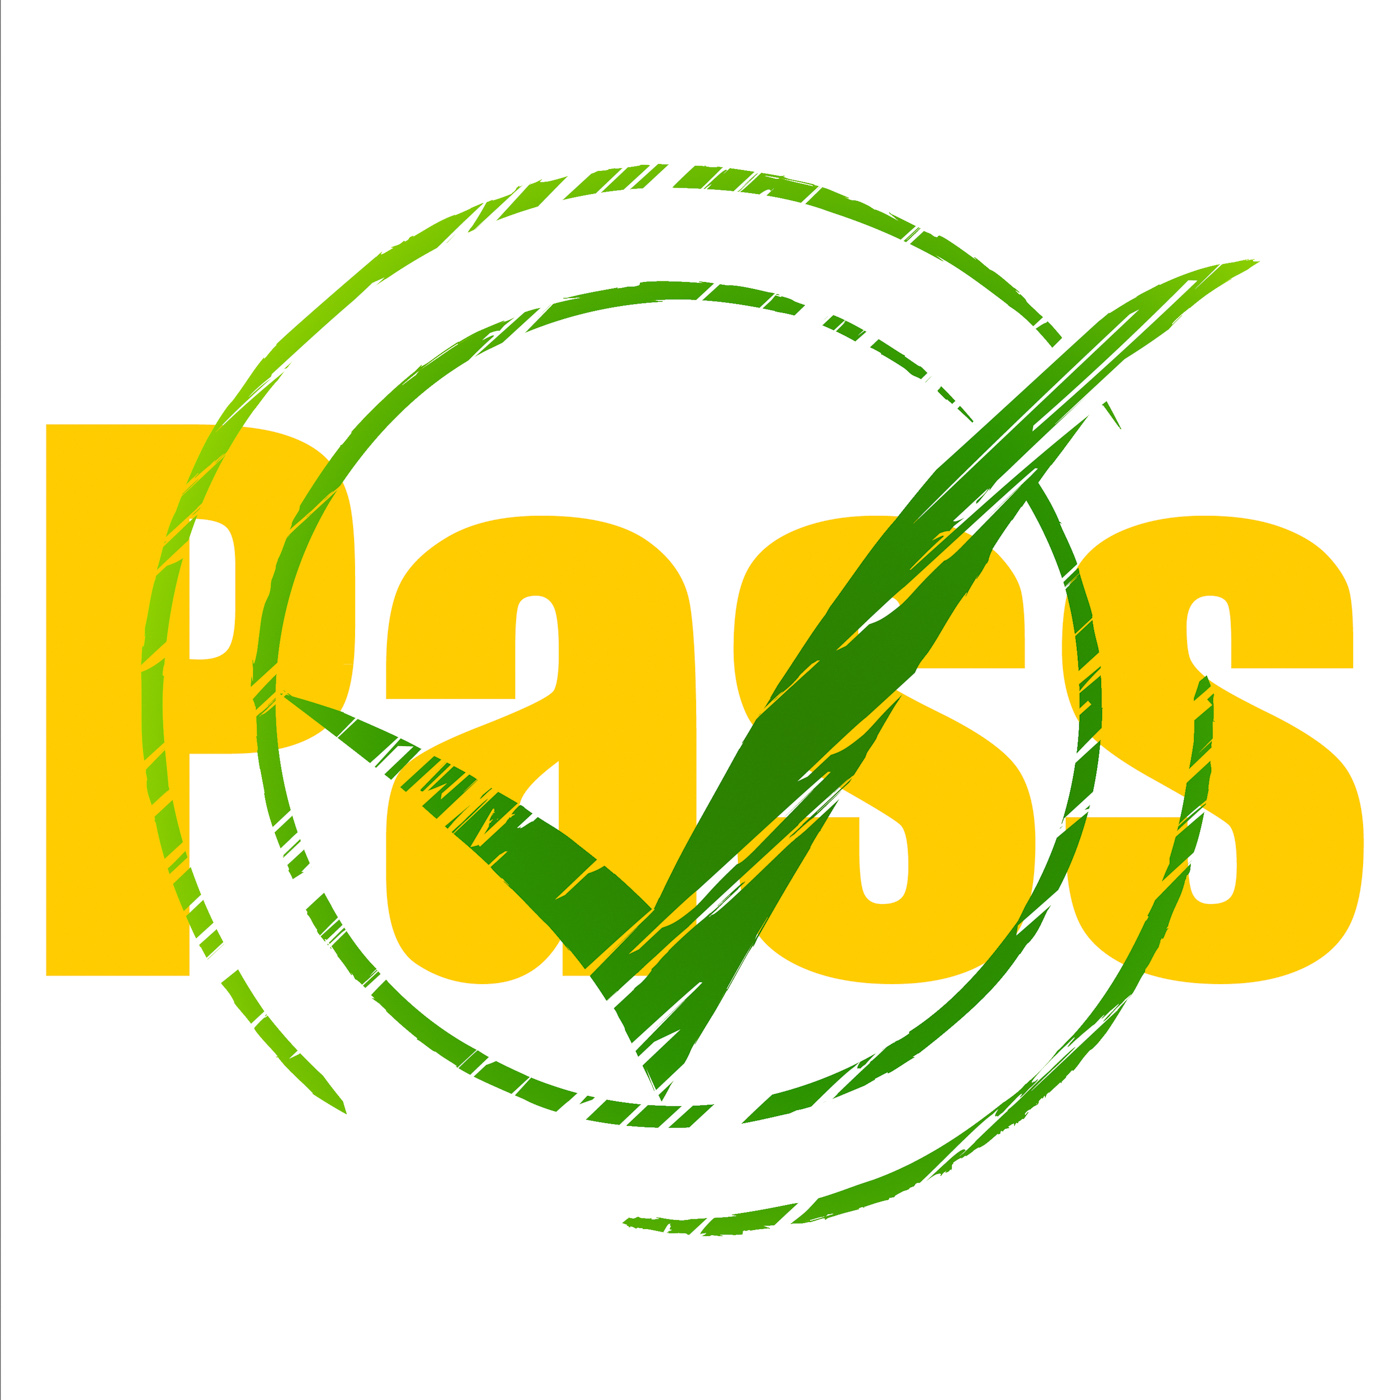 Tick pass shows check confirm and approval photo